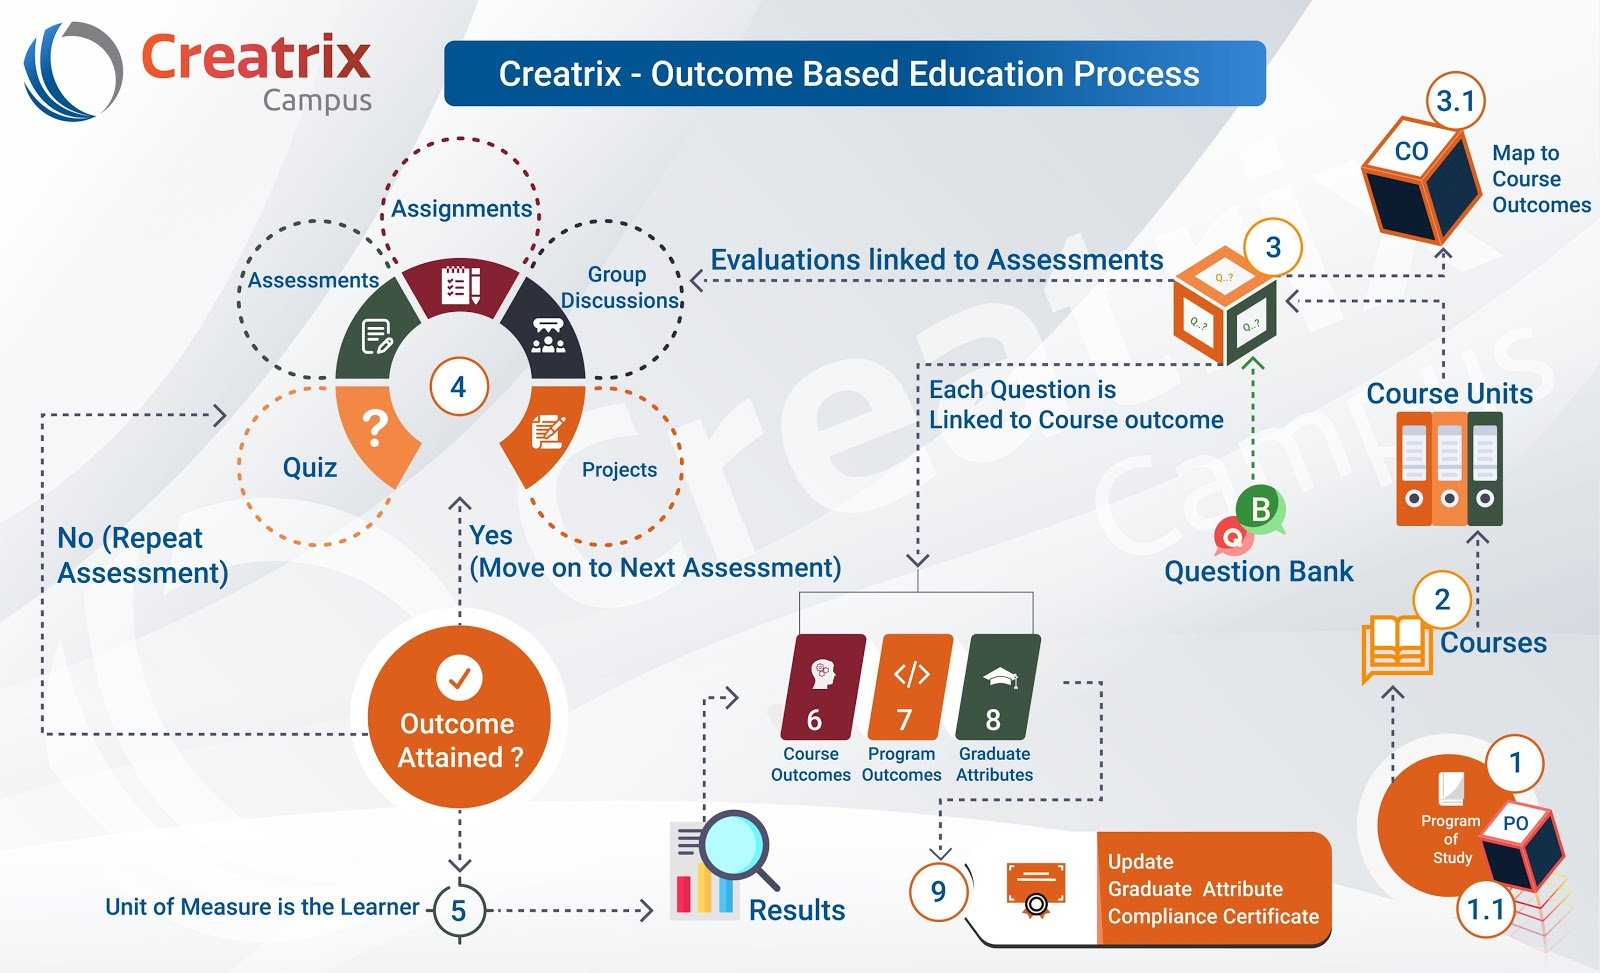 Outcome Based Education Implementation Process